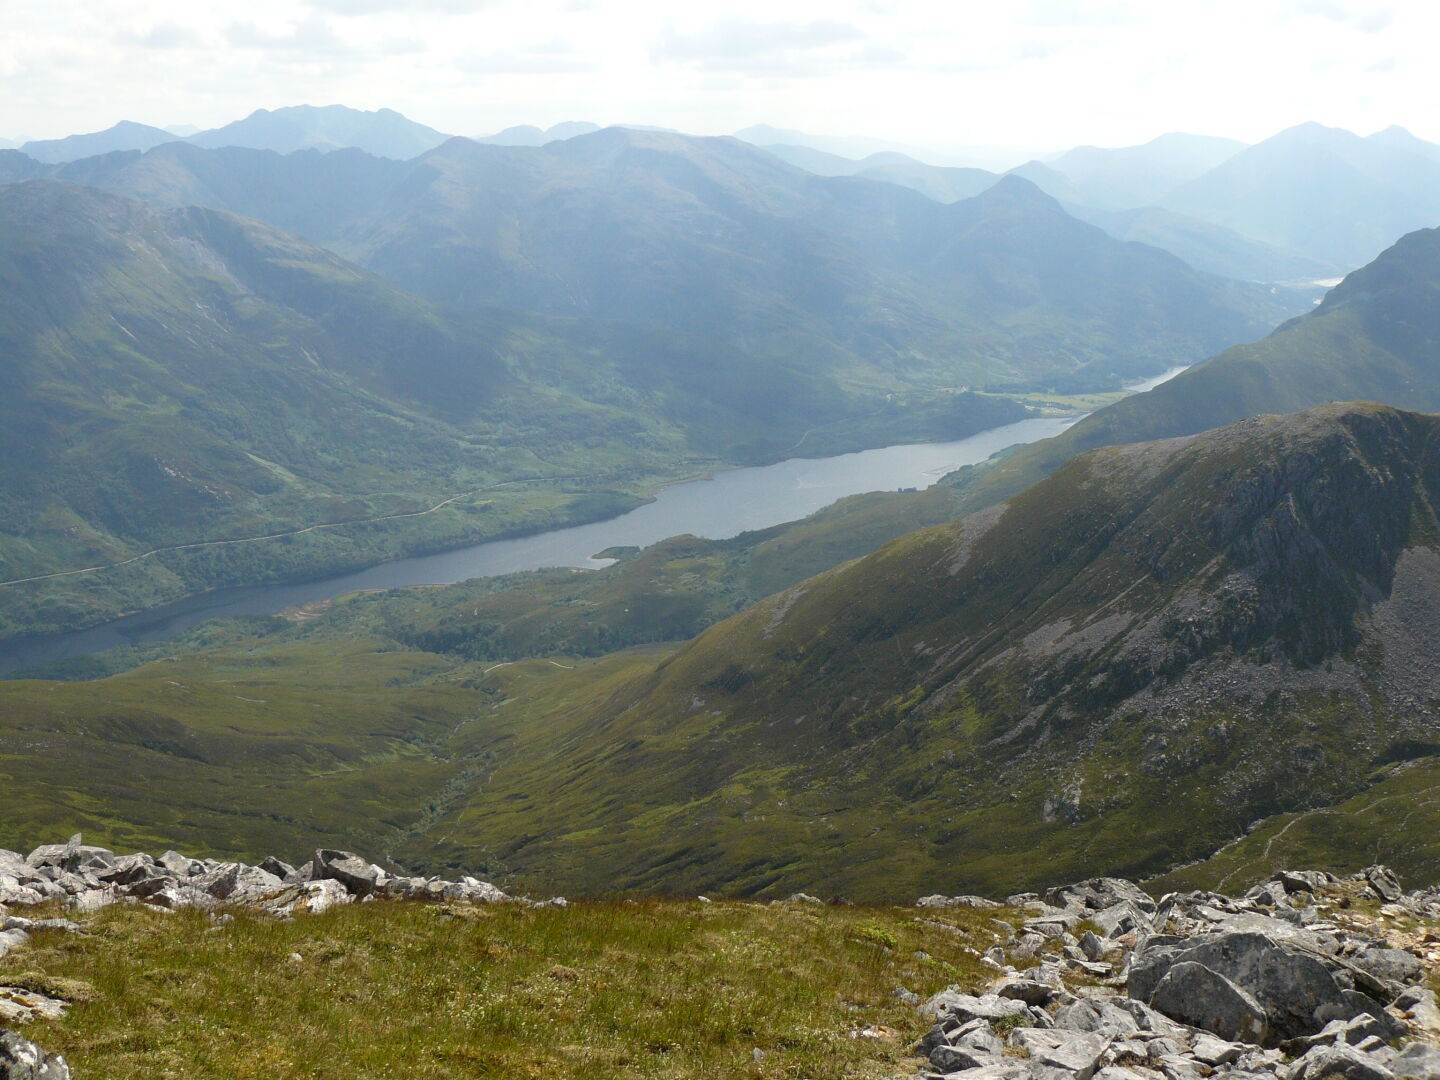 Loch Leven lies far below us to the south, and Ben Nevis in the North. Meandering streams decorate the valleys in between. Right image (c) James Mellors.